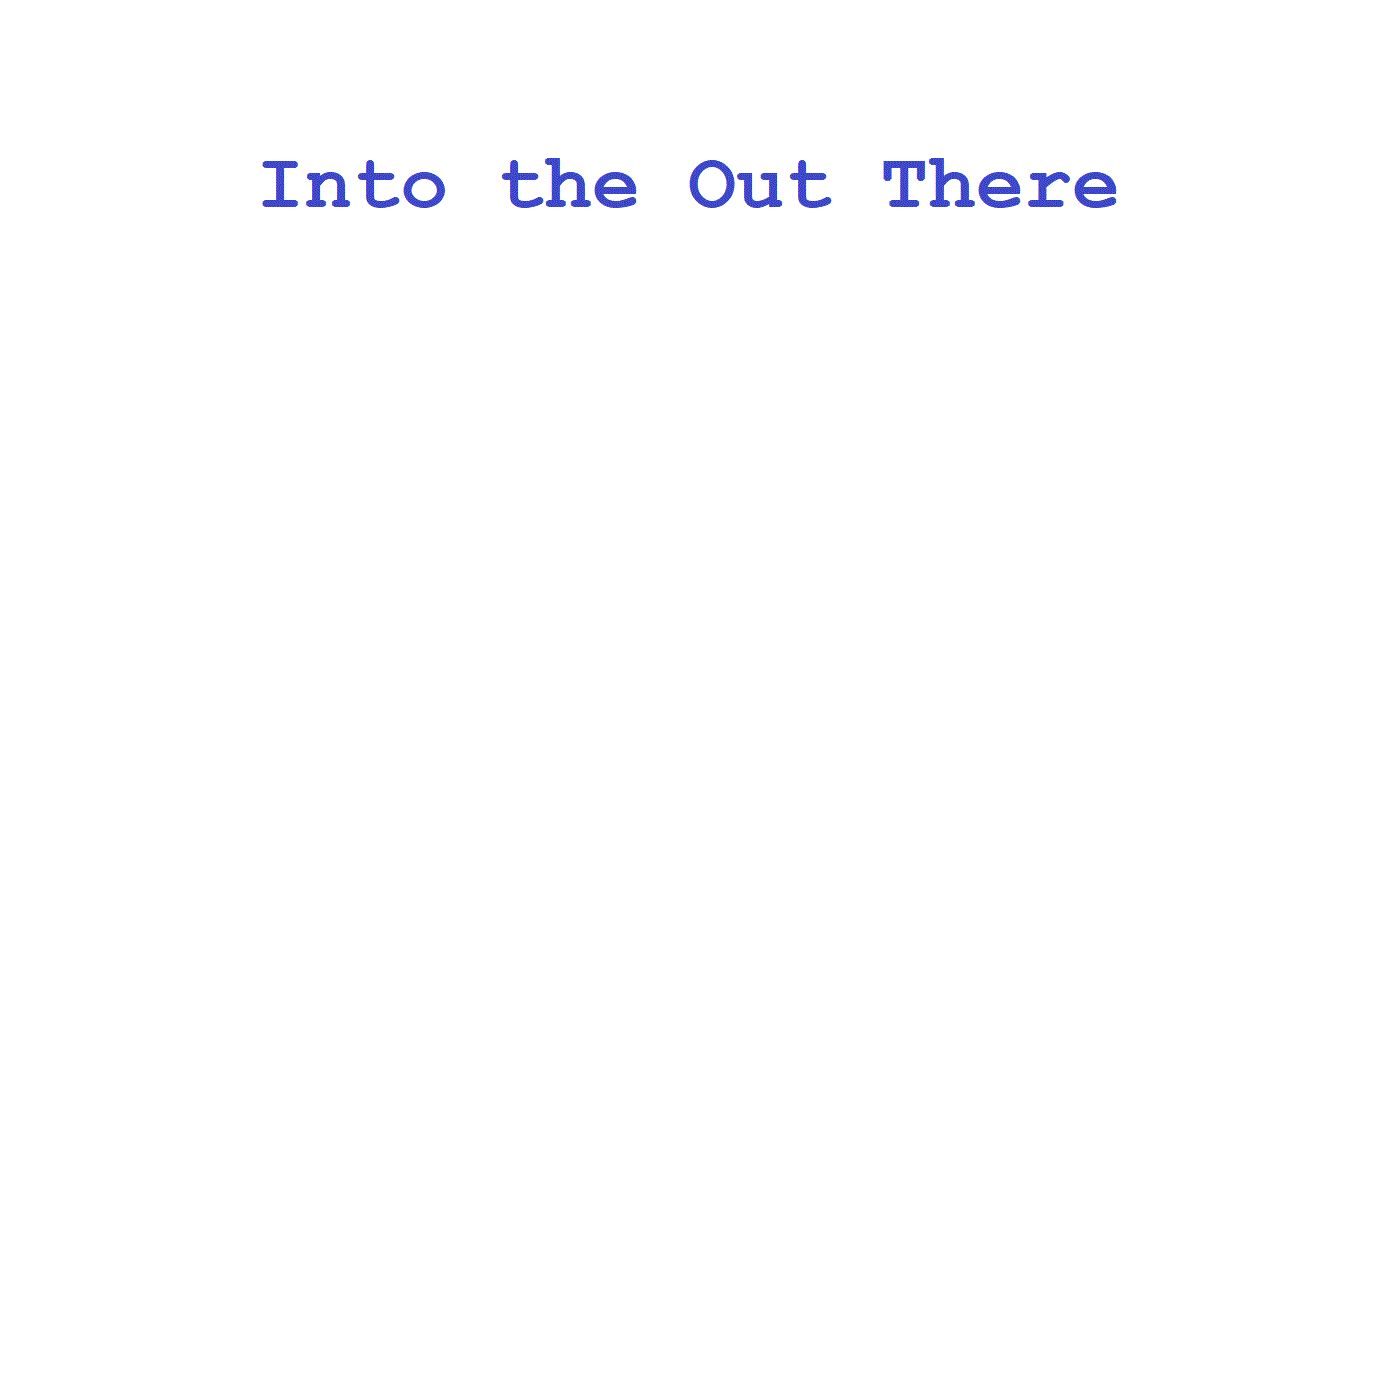 Into the Out There